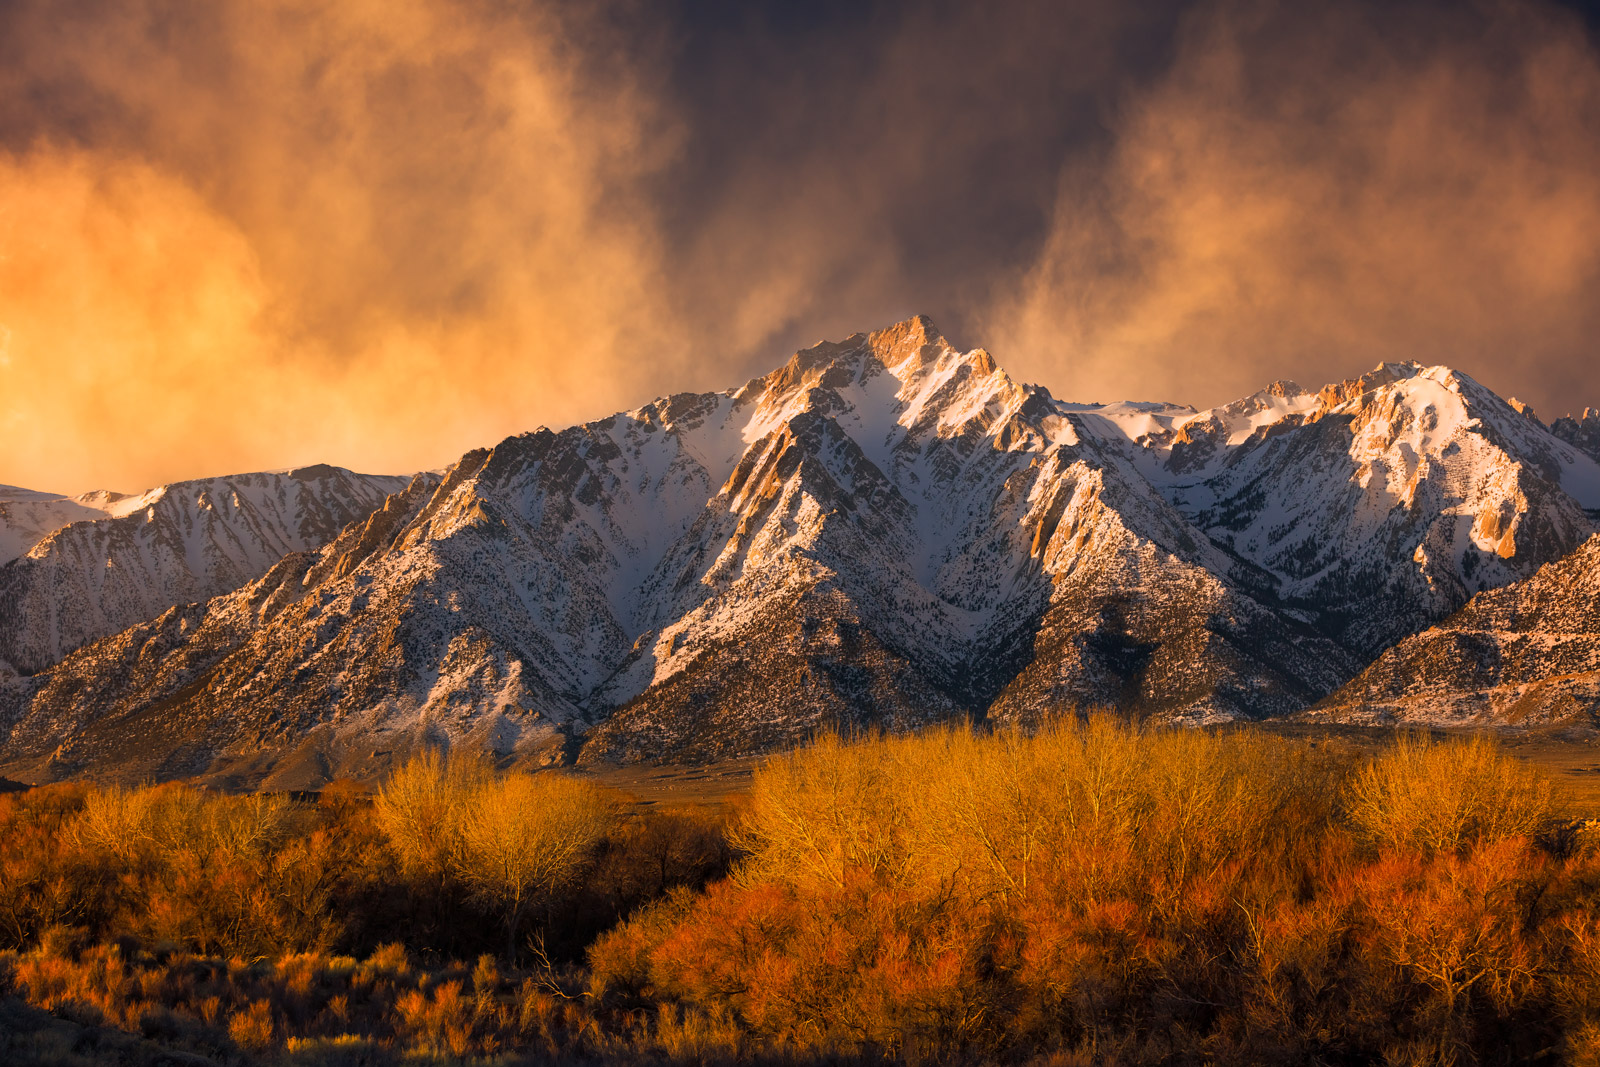 A Limited Edition, Fine Art photograph of an exceptional sunrise over the snow covered mountains and golden winter fields in...